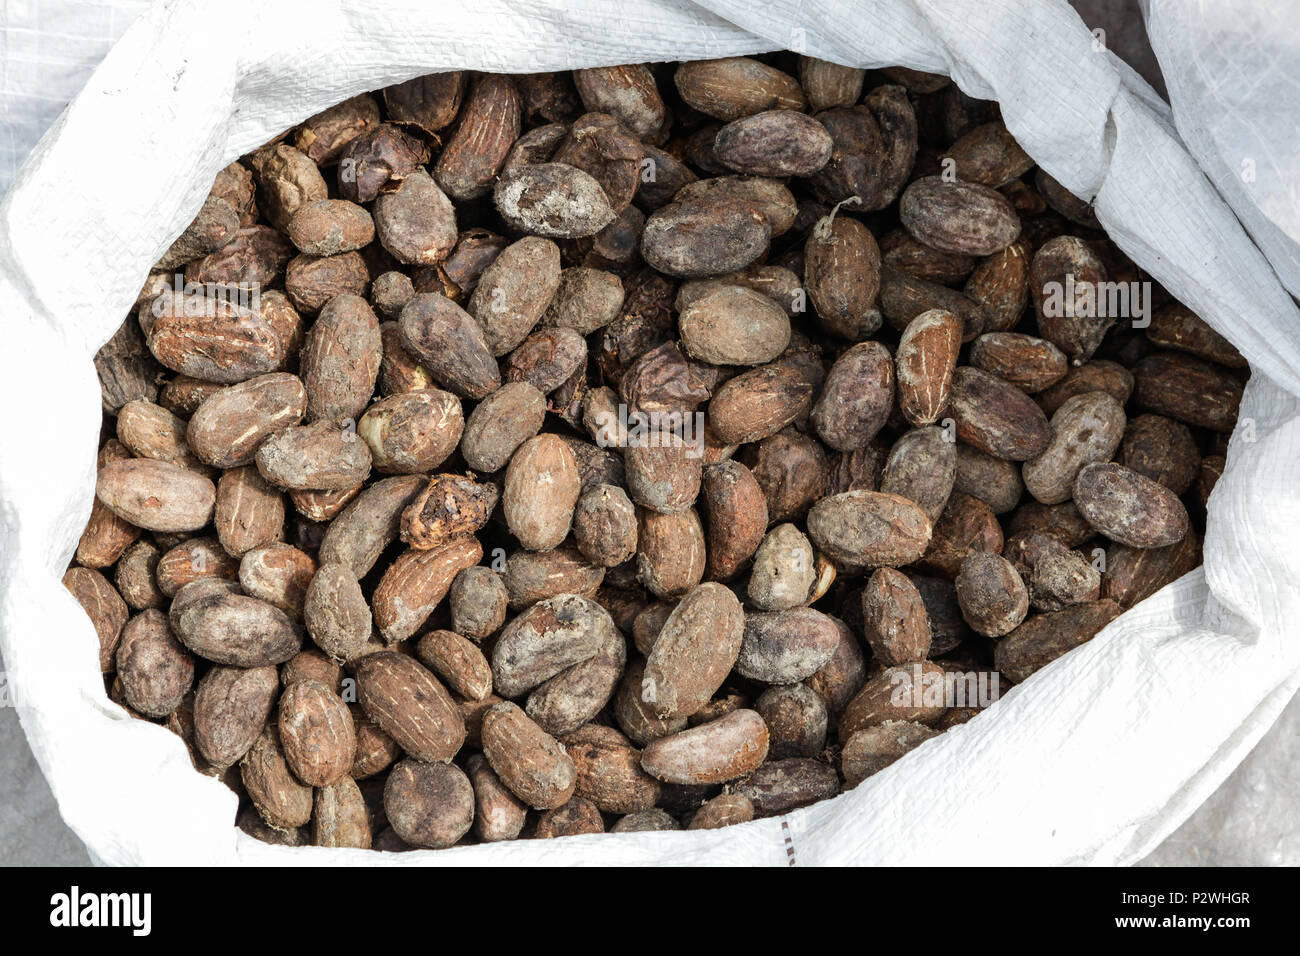 Close up of Bacuri-açu (Platonia Insignis) seeds, specie from Amazon rainforest, used for conservation purposes and in cosmetics industry. - Stock Image